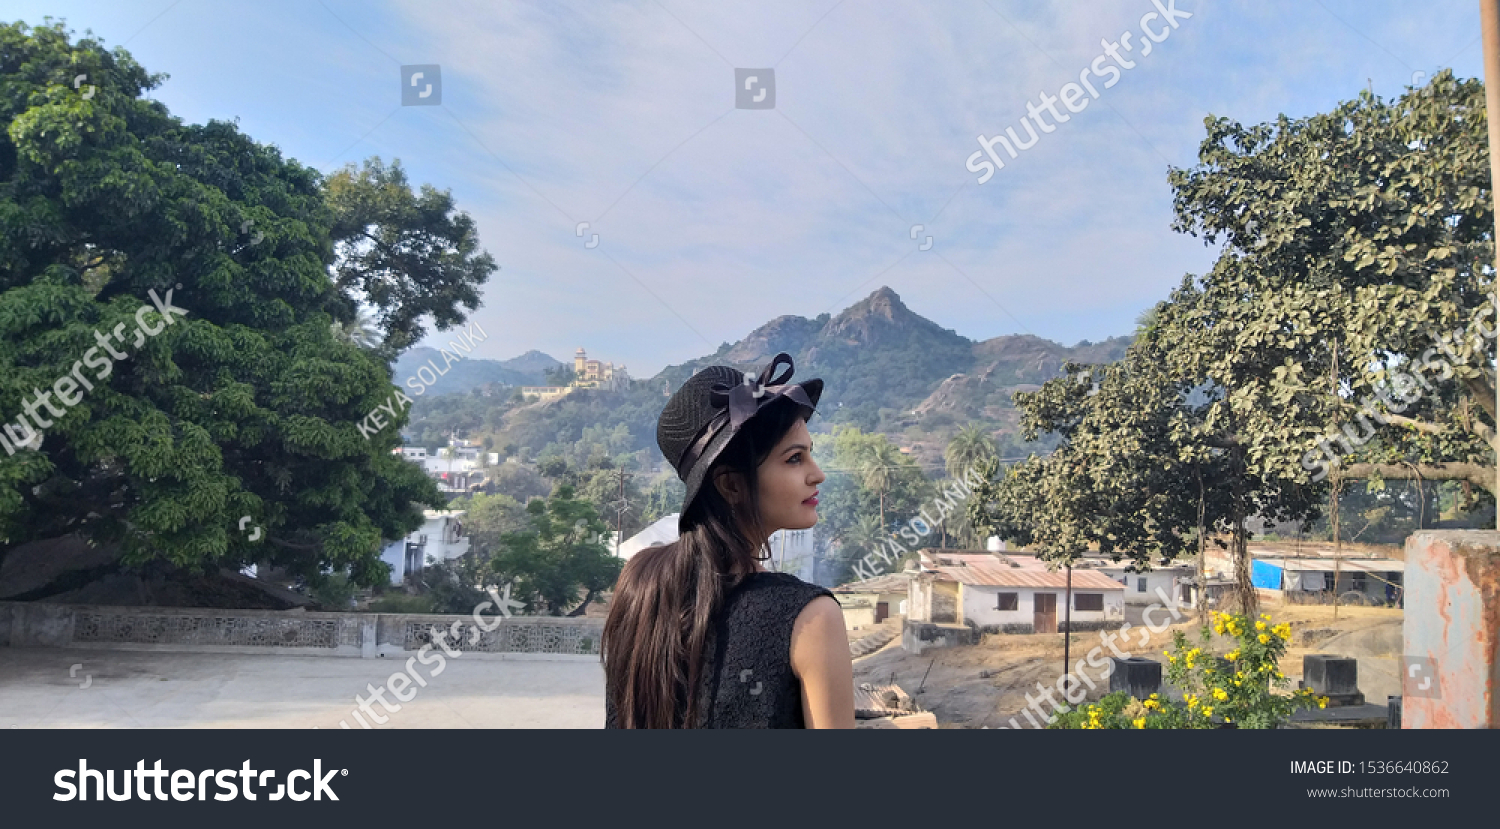 young girl with hat enjoying beautiful day at mount abu, Rajasthan . Tourist traveler, mountain view background on trip of Rajasthan country India